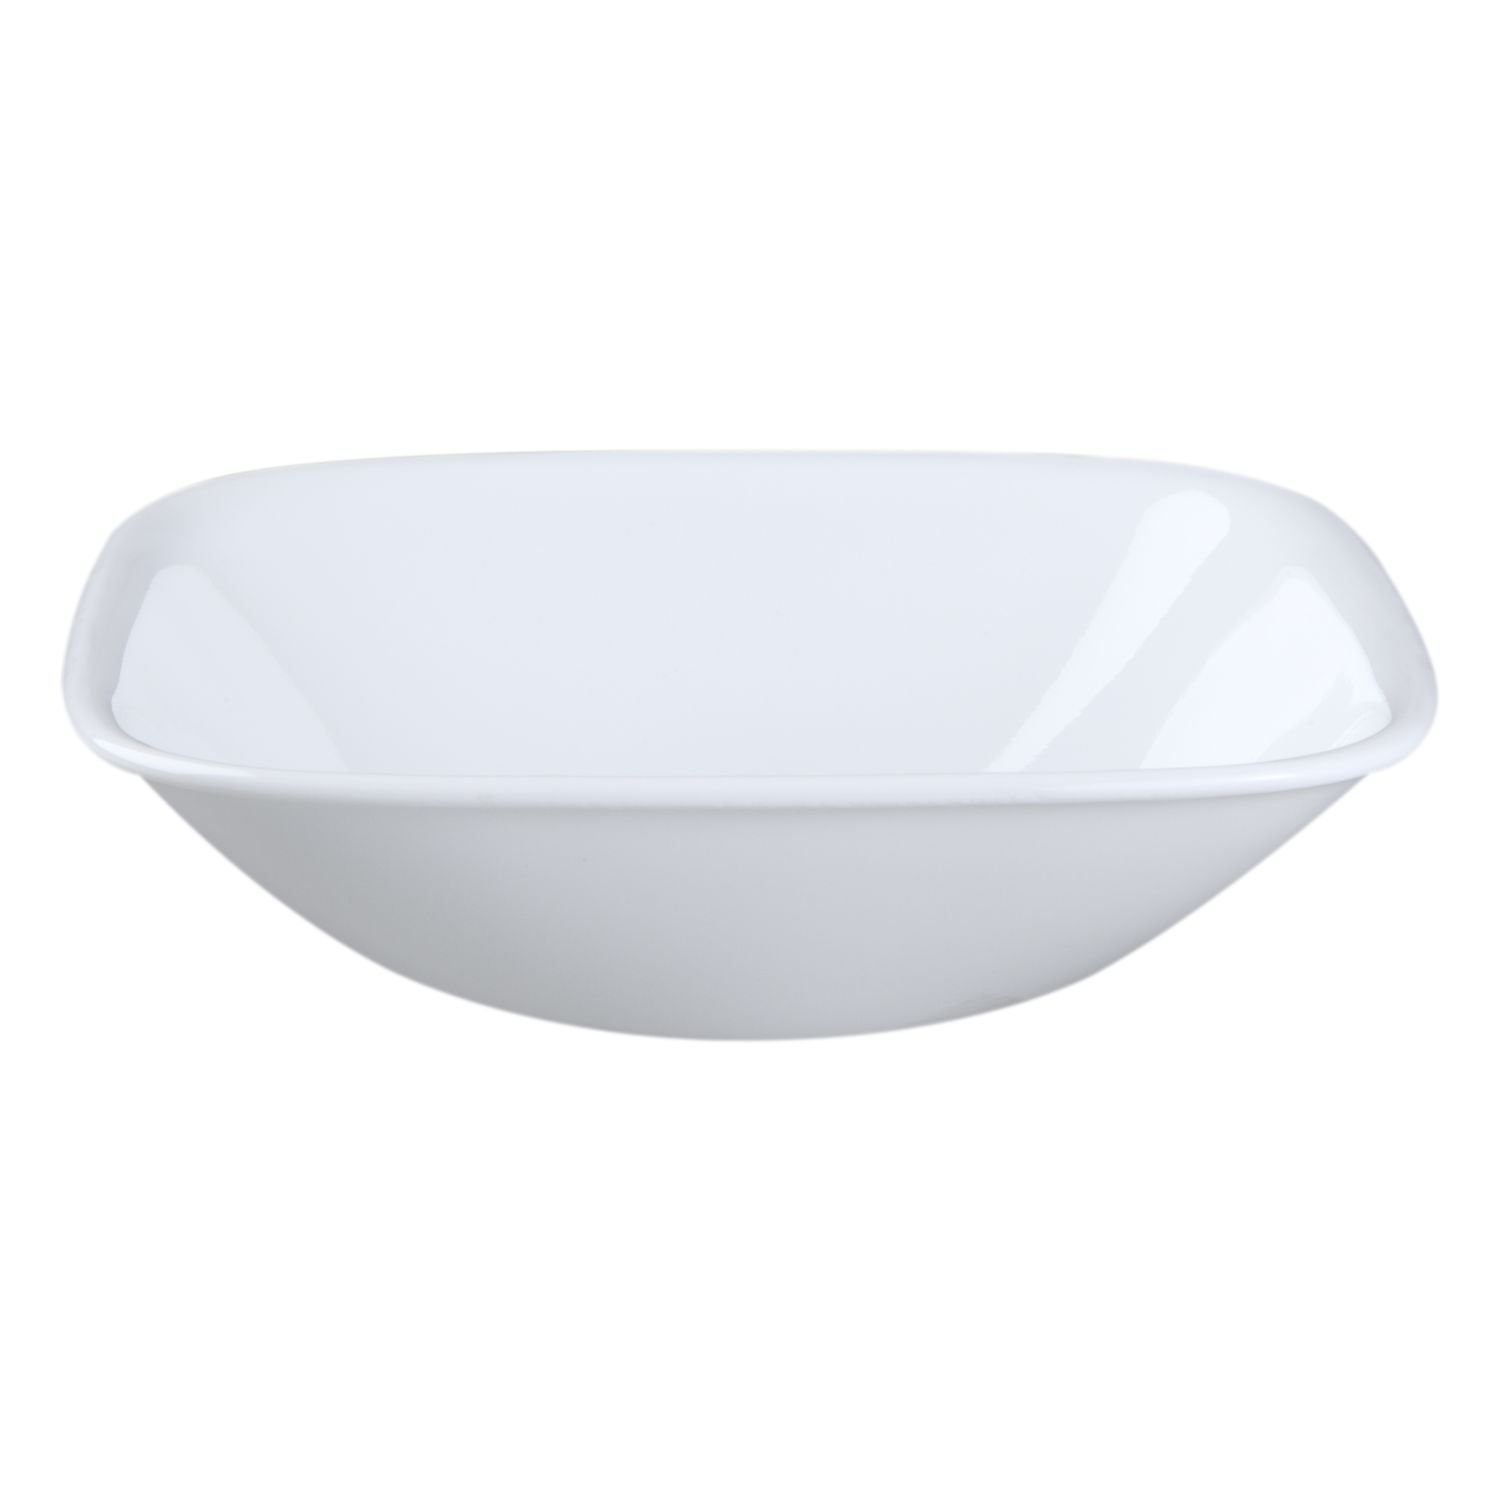 Corelle Square Pure White 10 Ounce Soup/Cereal Bowl (Set of 6) WORLD KITCHEN